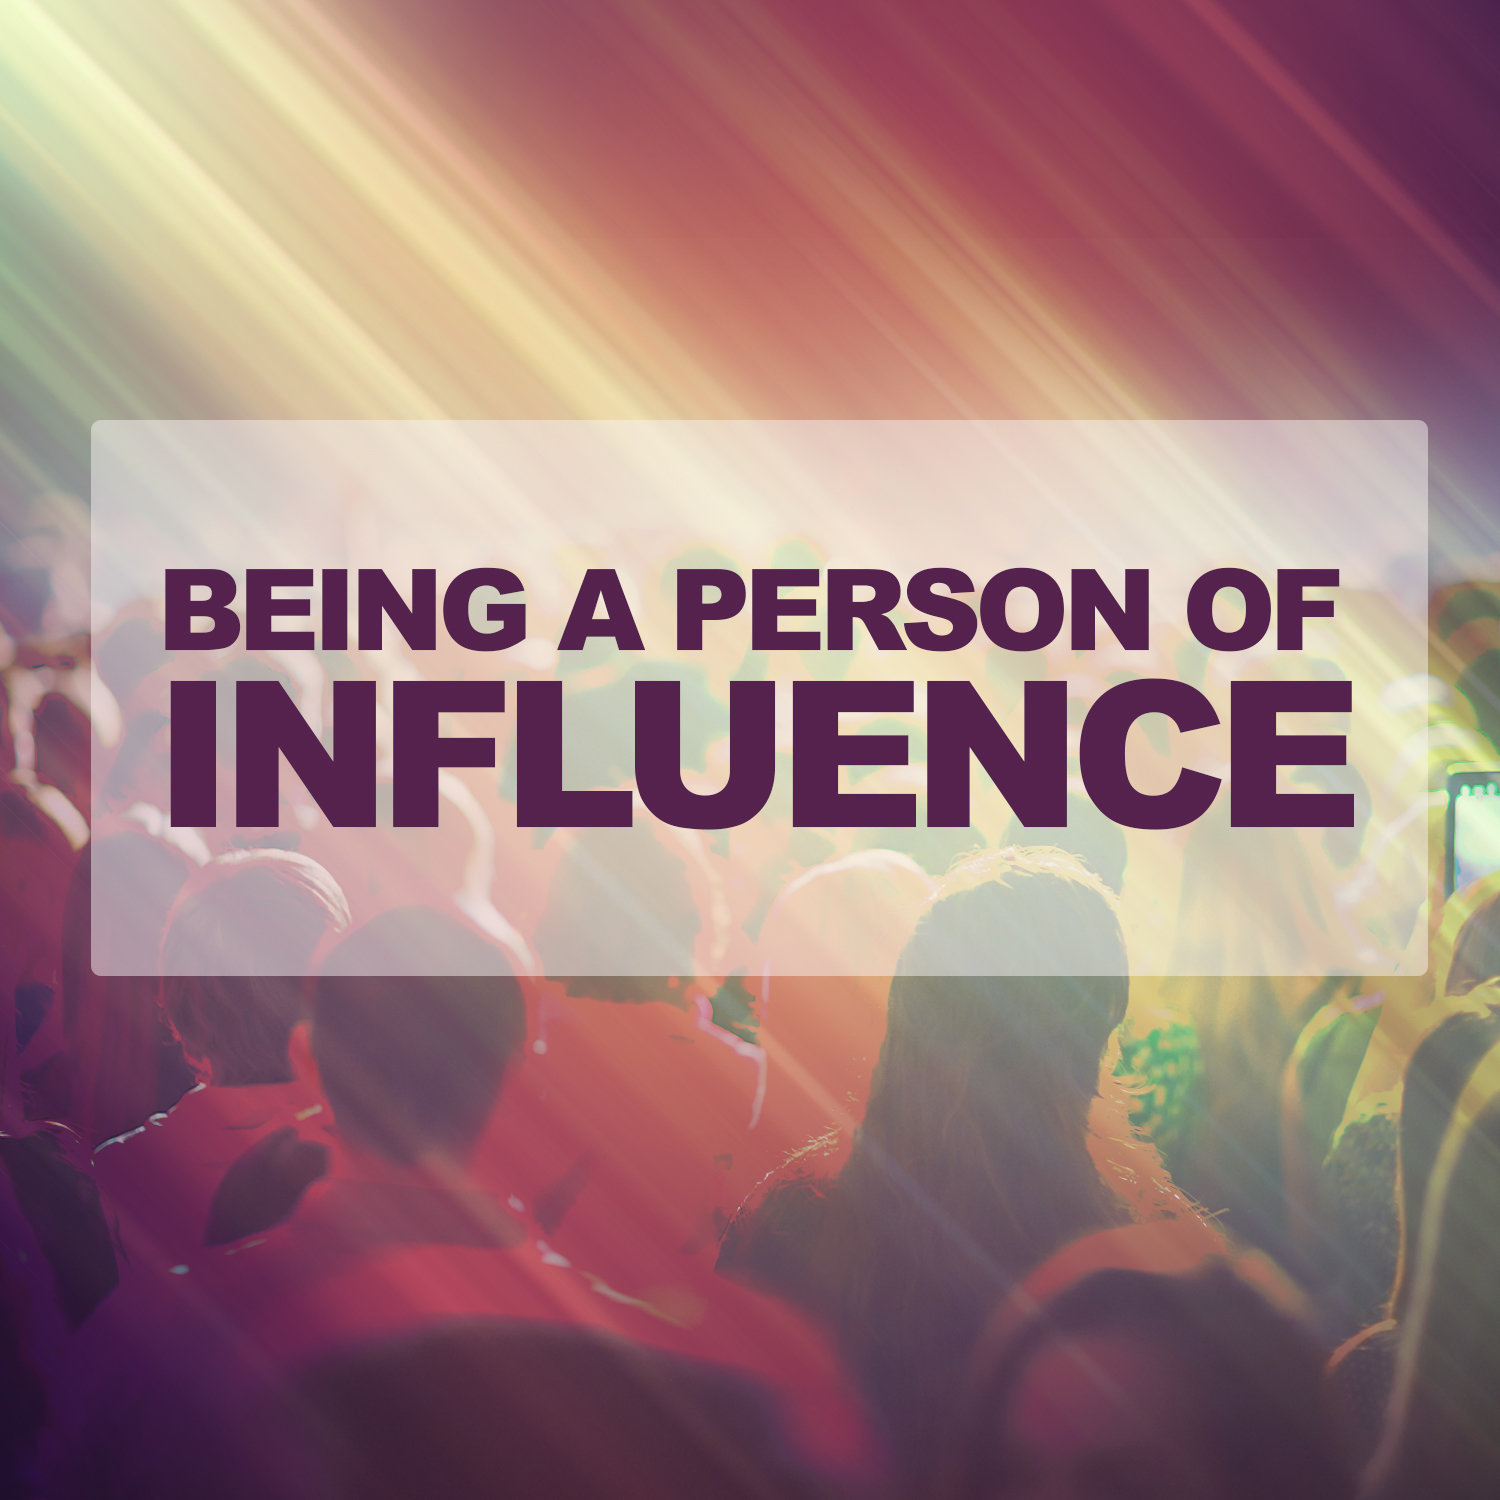 Being A Person of Influence-CD Series CD6050